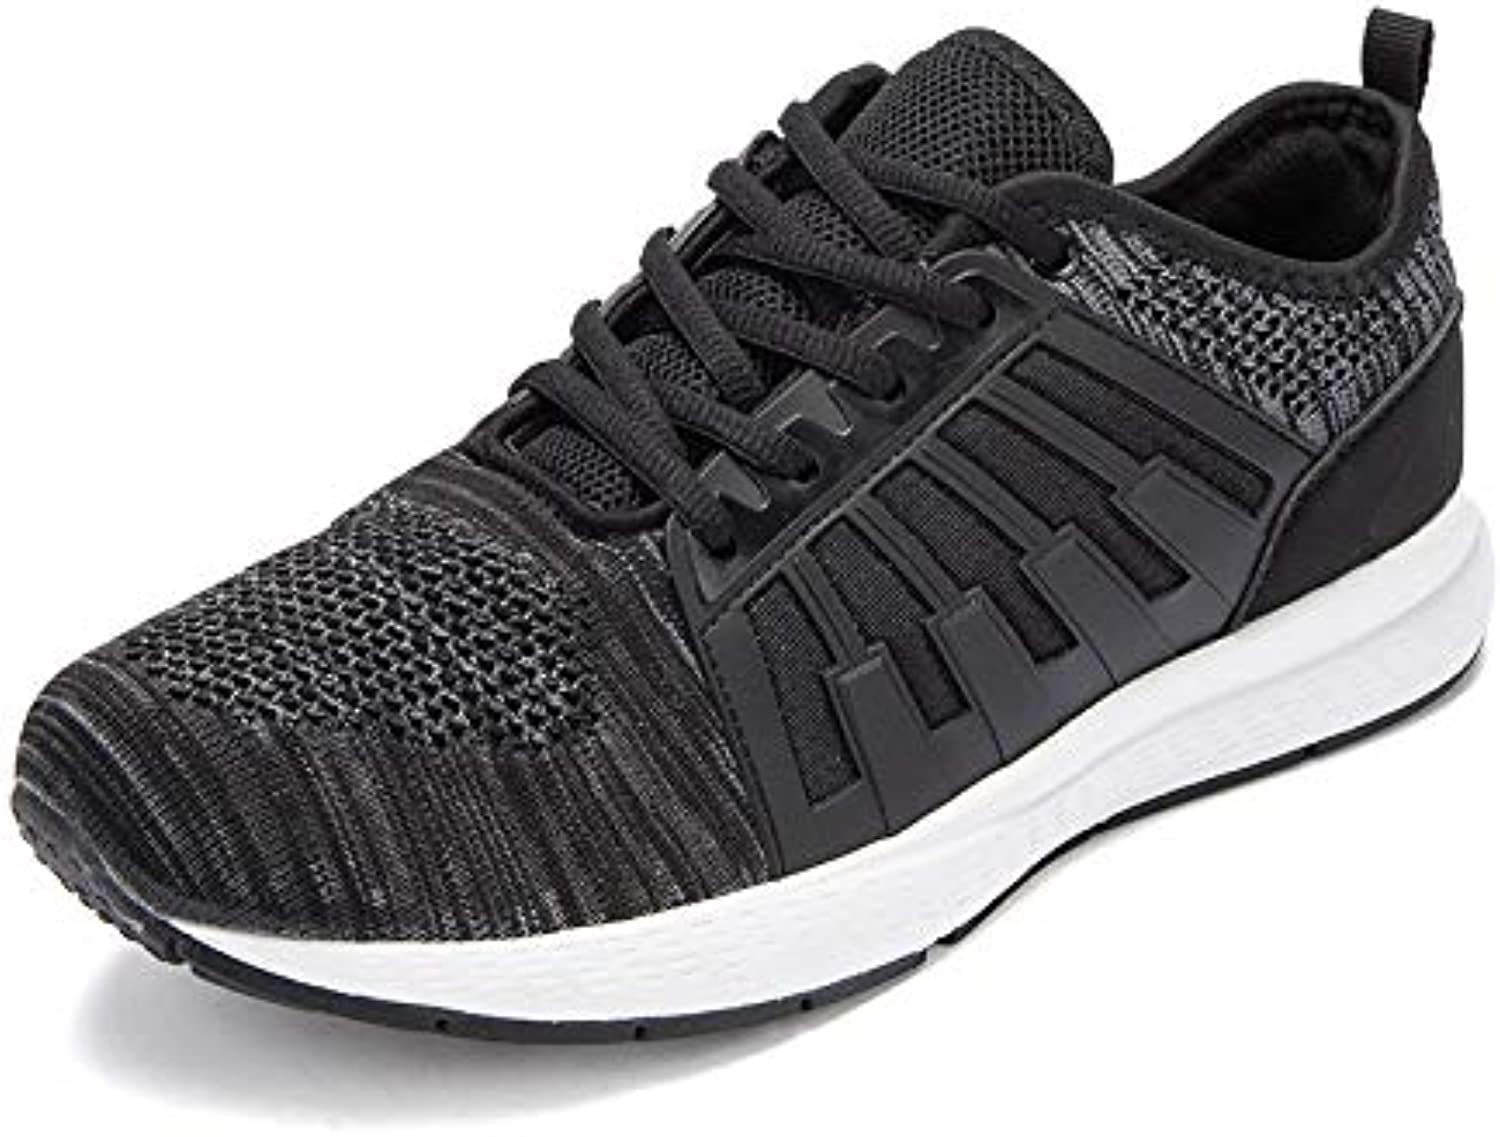 LOVDRAM Men's shoes Cross-Mirror Sports shoes Men'S New Men'S Spring Men'S shoes Flying Woven New Casual shoes